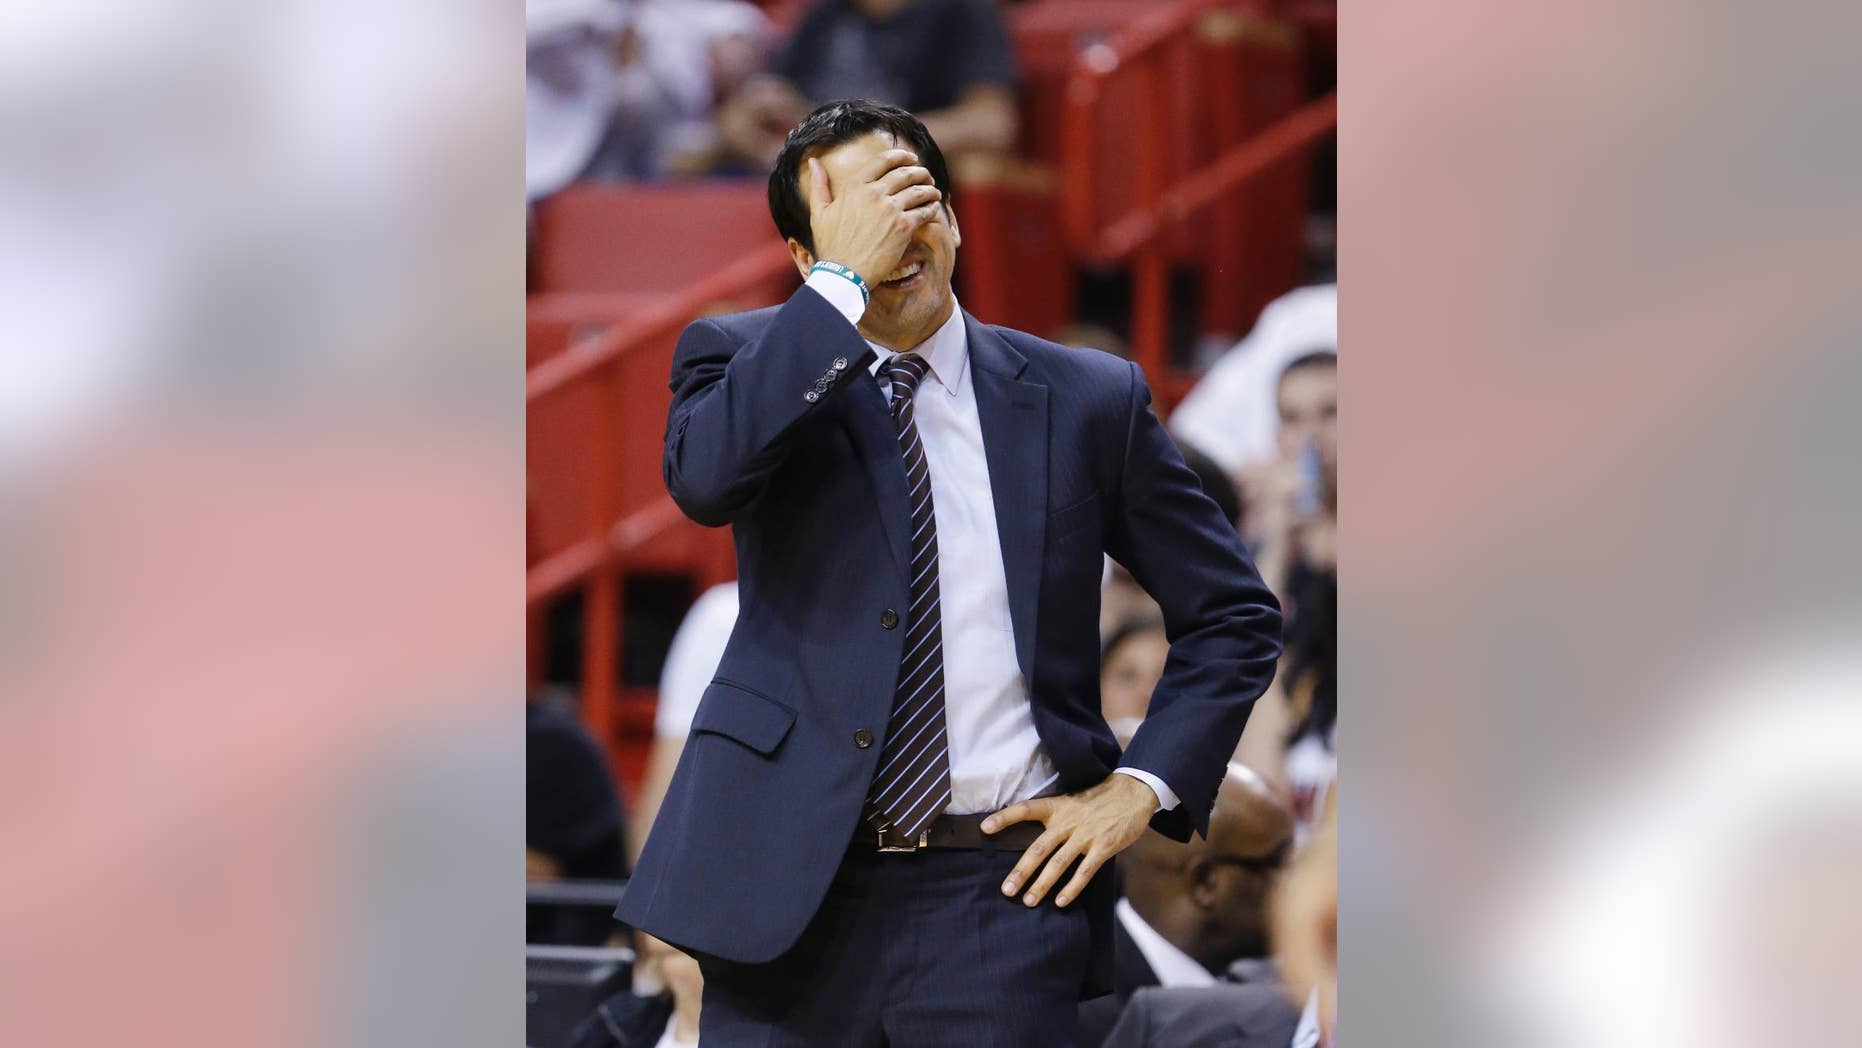 Miami Heat head coach Erik Spoelstra reacts after a call during the second half of an NBA basketball game against the Philadelphia 76ers, Wednesday, April 16, 2014 in Miami. The 76ers defeated the Heat 100-87. (AP Photo/Wilfredo Lee)